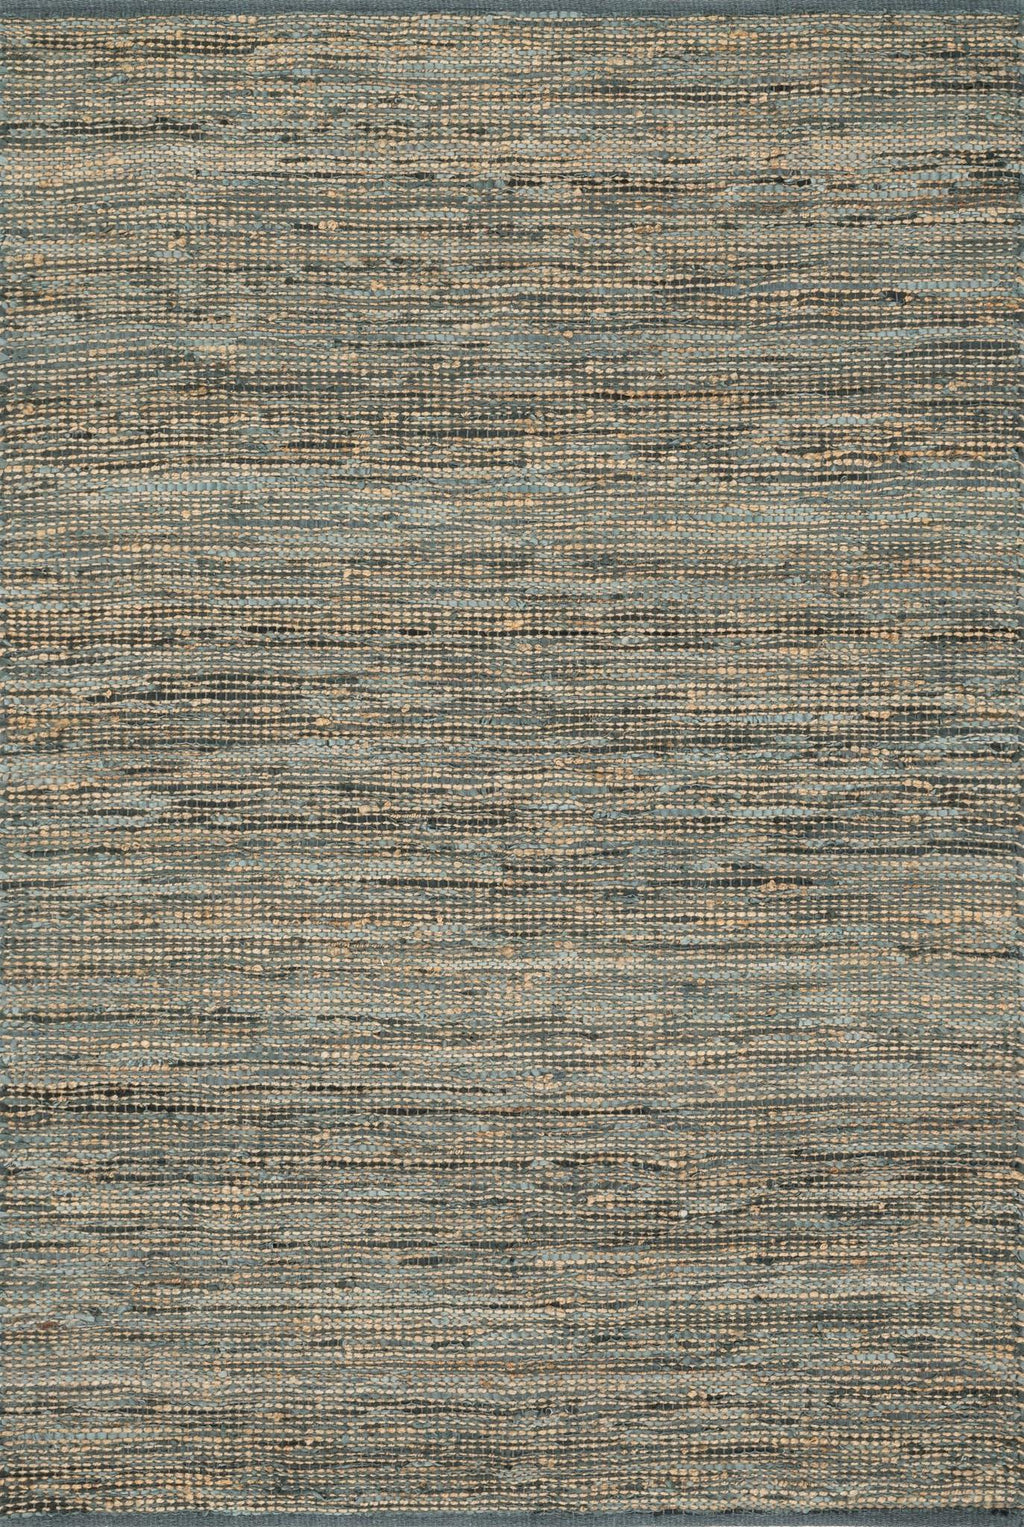 EDGE Collection Rug  in  GREY Gray Small Hand-Woven Jute/Hemp